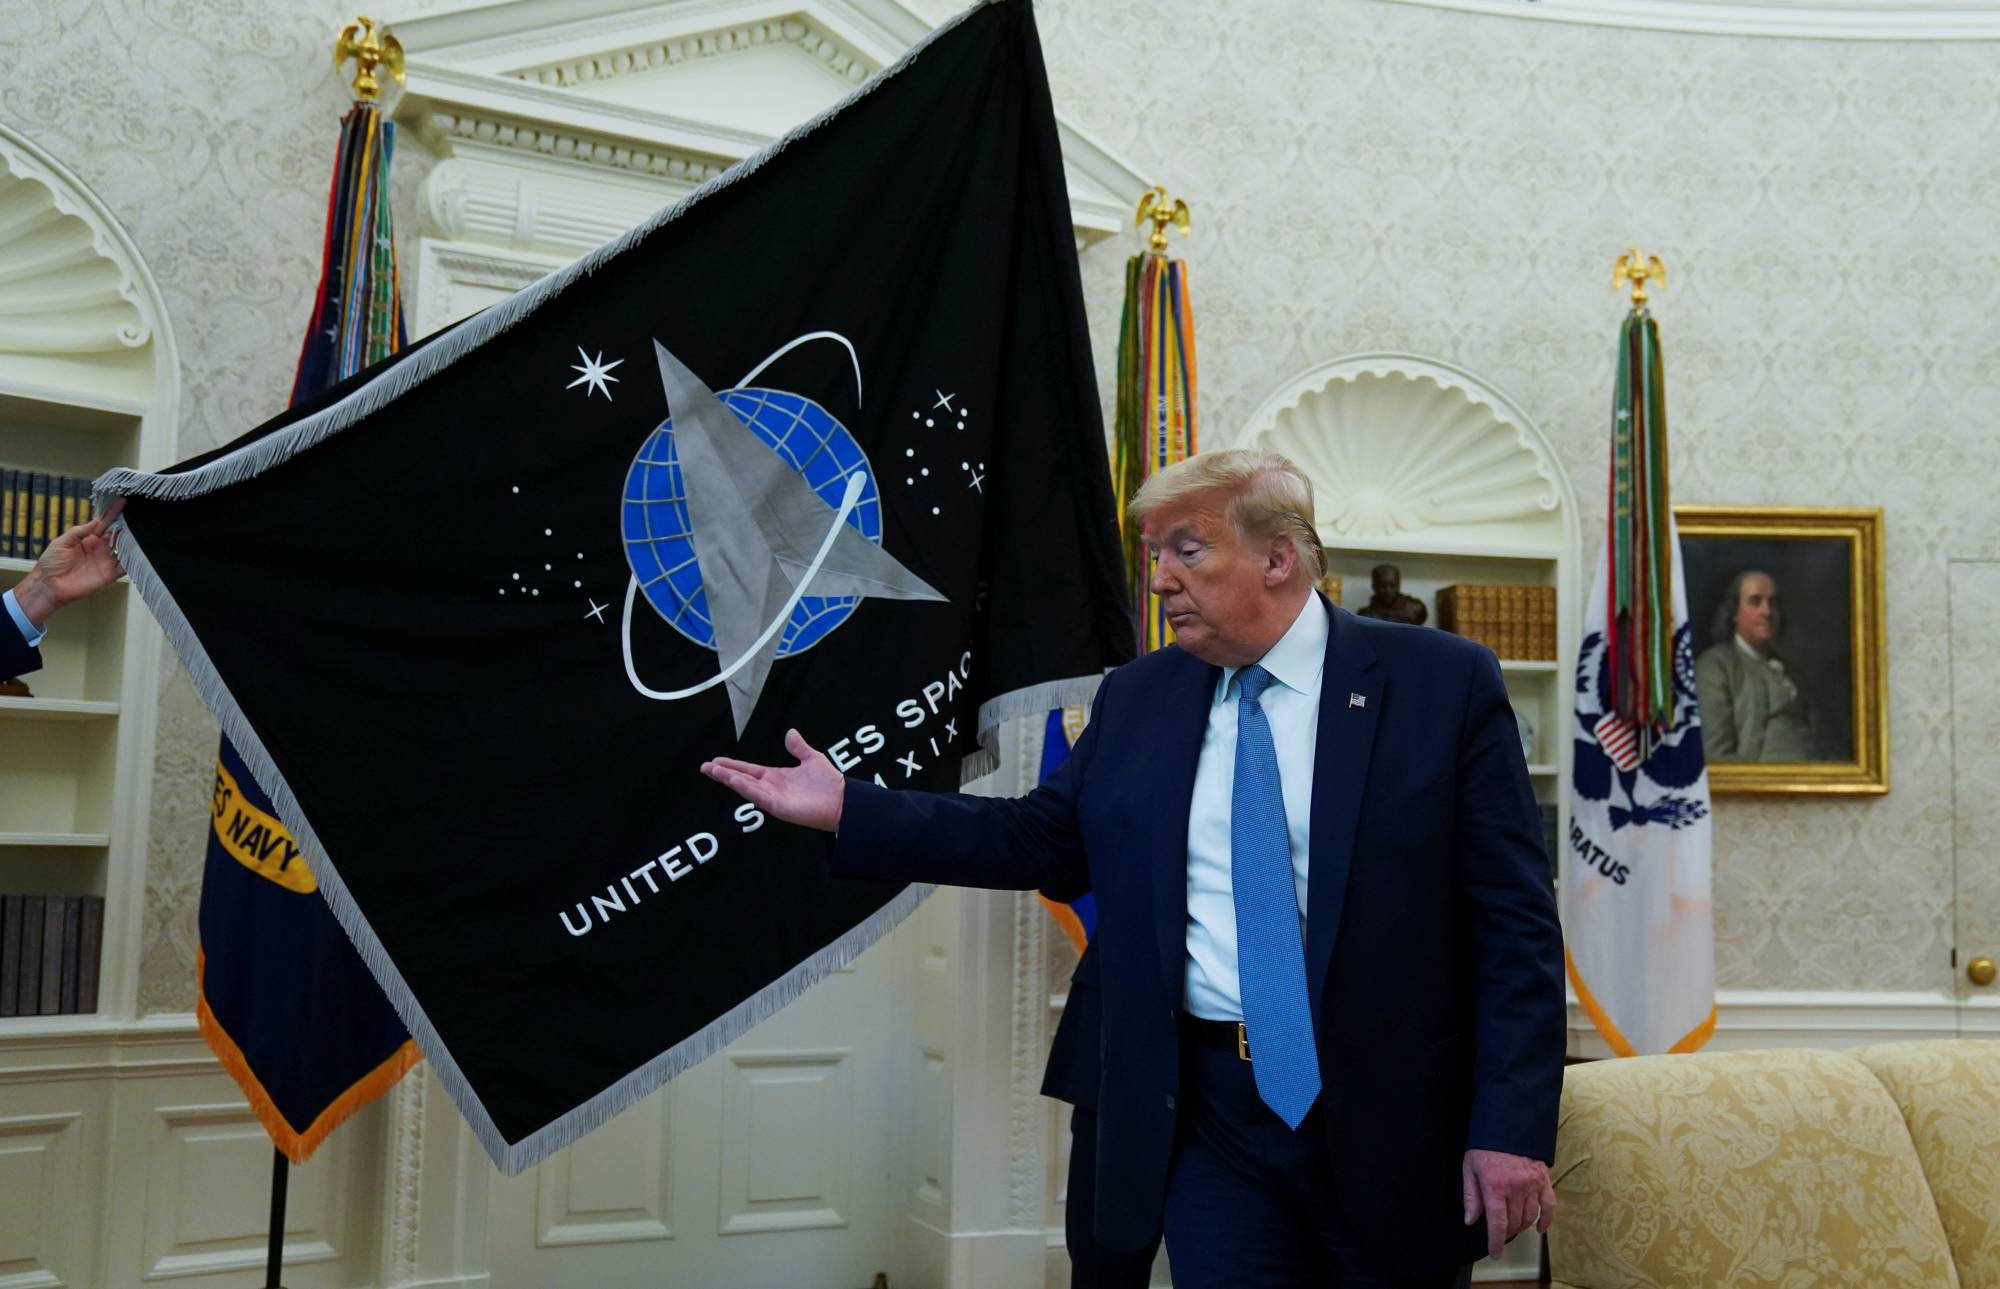 Former U.S. President Donald Trump inspects the U.S. Space Force flag during a presentation of the banner in the Oval Office in Washington in May.    REUTERS